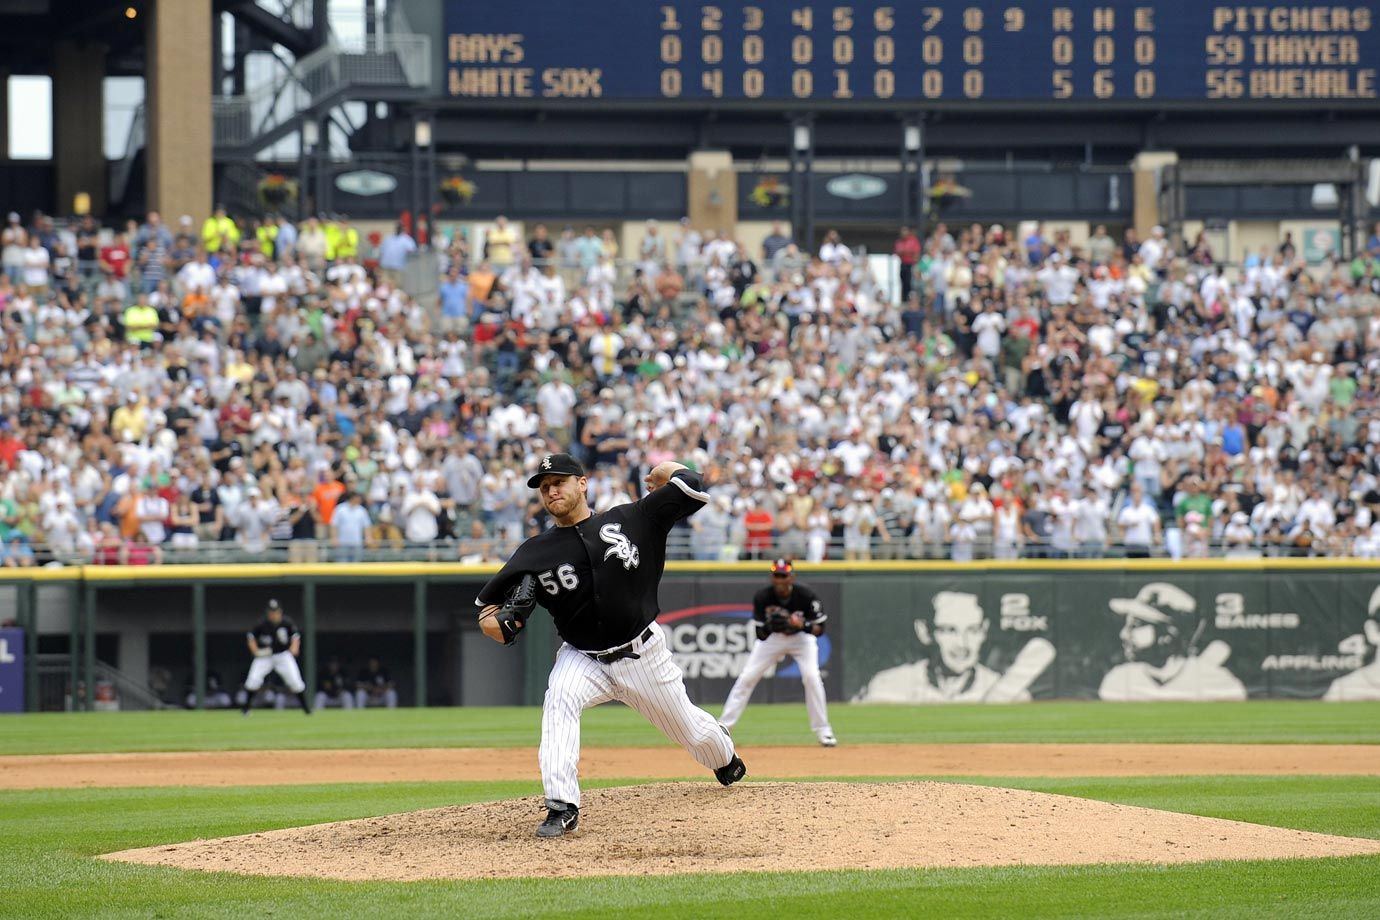 The White Sox drafted Buehrle, who went on to pitch for the team for over 10 years. In his career, Buehrle has won over 200 major league games, thrown a perfect game and a 27-batter no-hitter, made five All-Star teams, won four Gold Gloves, and remains one of the most durable pitchers in major league history.